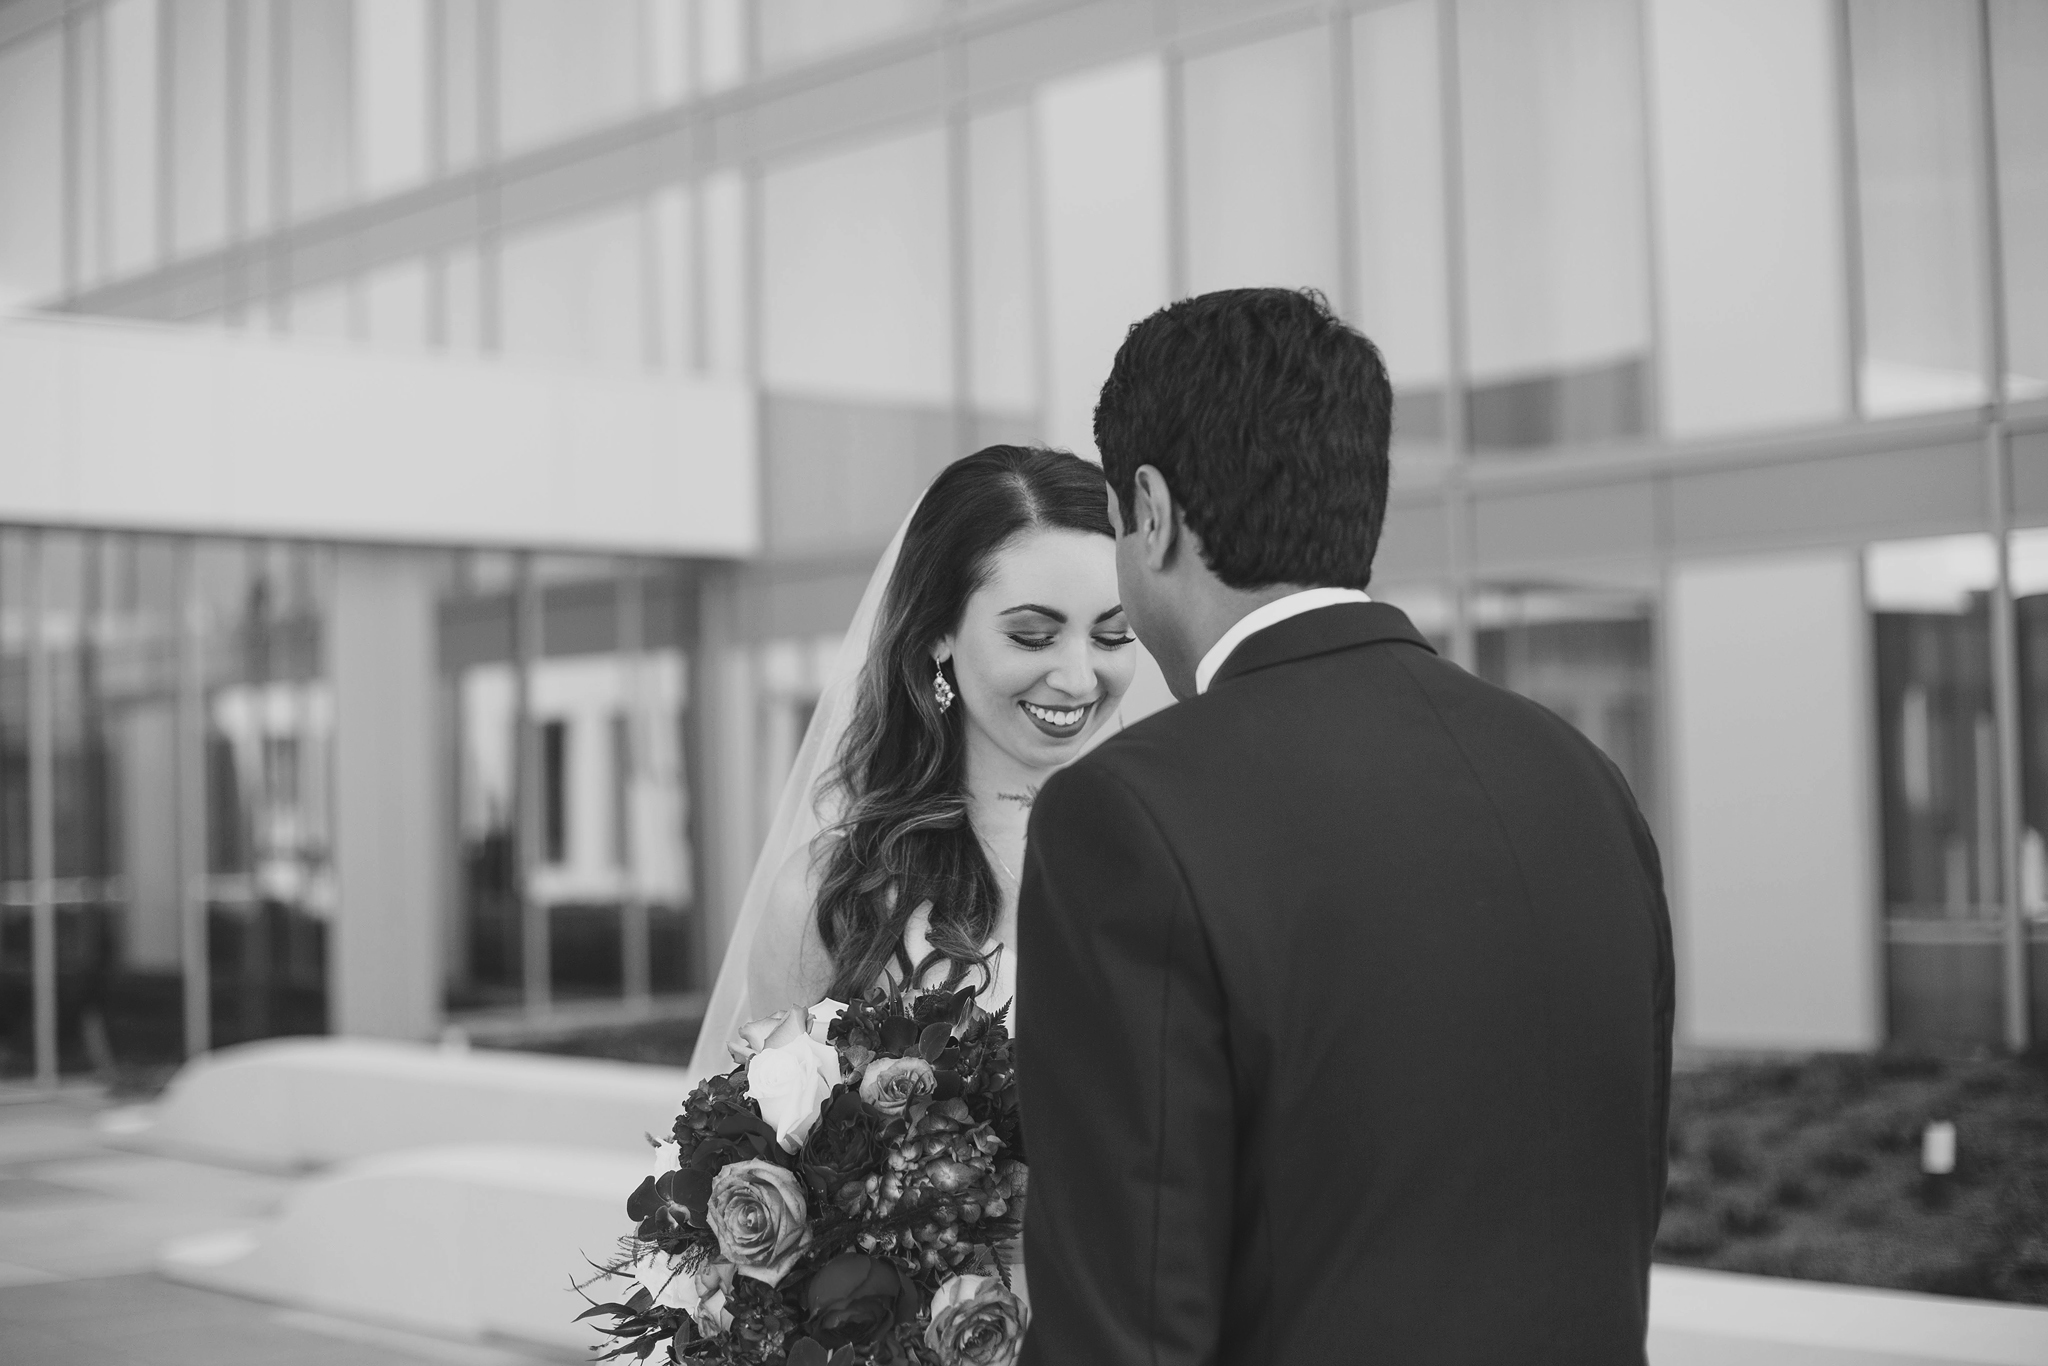 cincinnati and dayton oh based wedding photographer -  the summit hotel - indian and catholic mergin